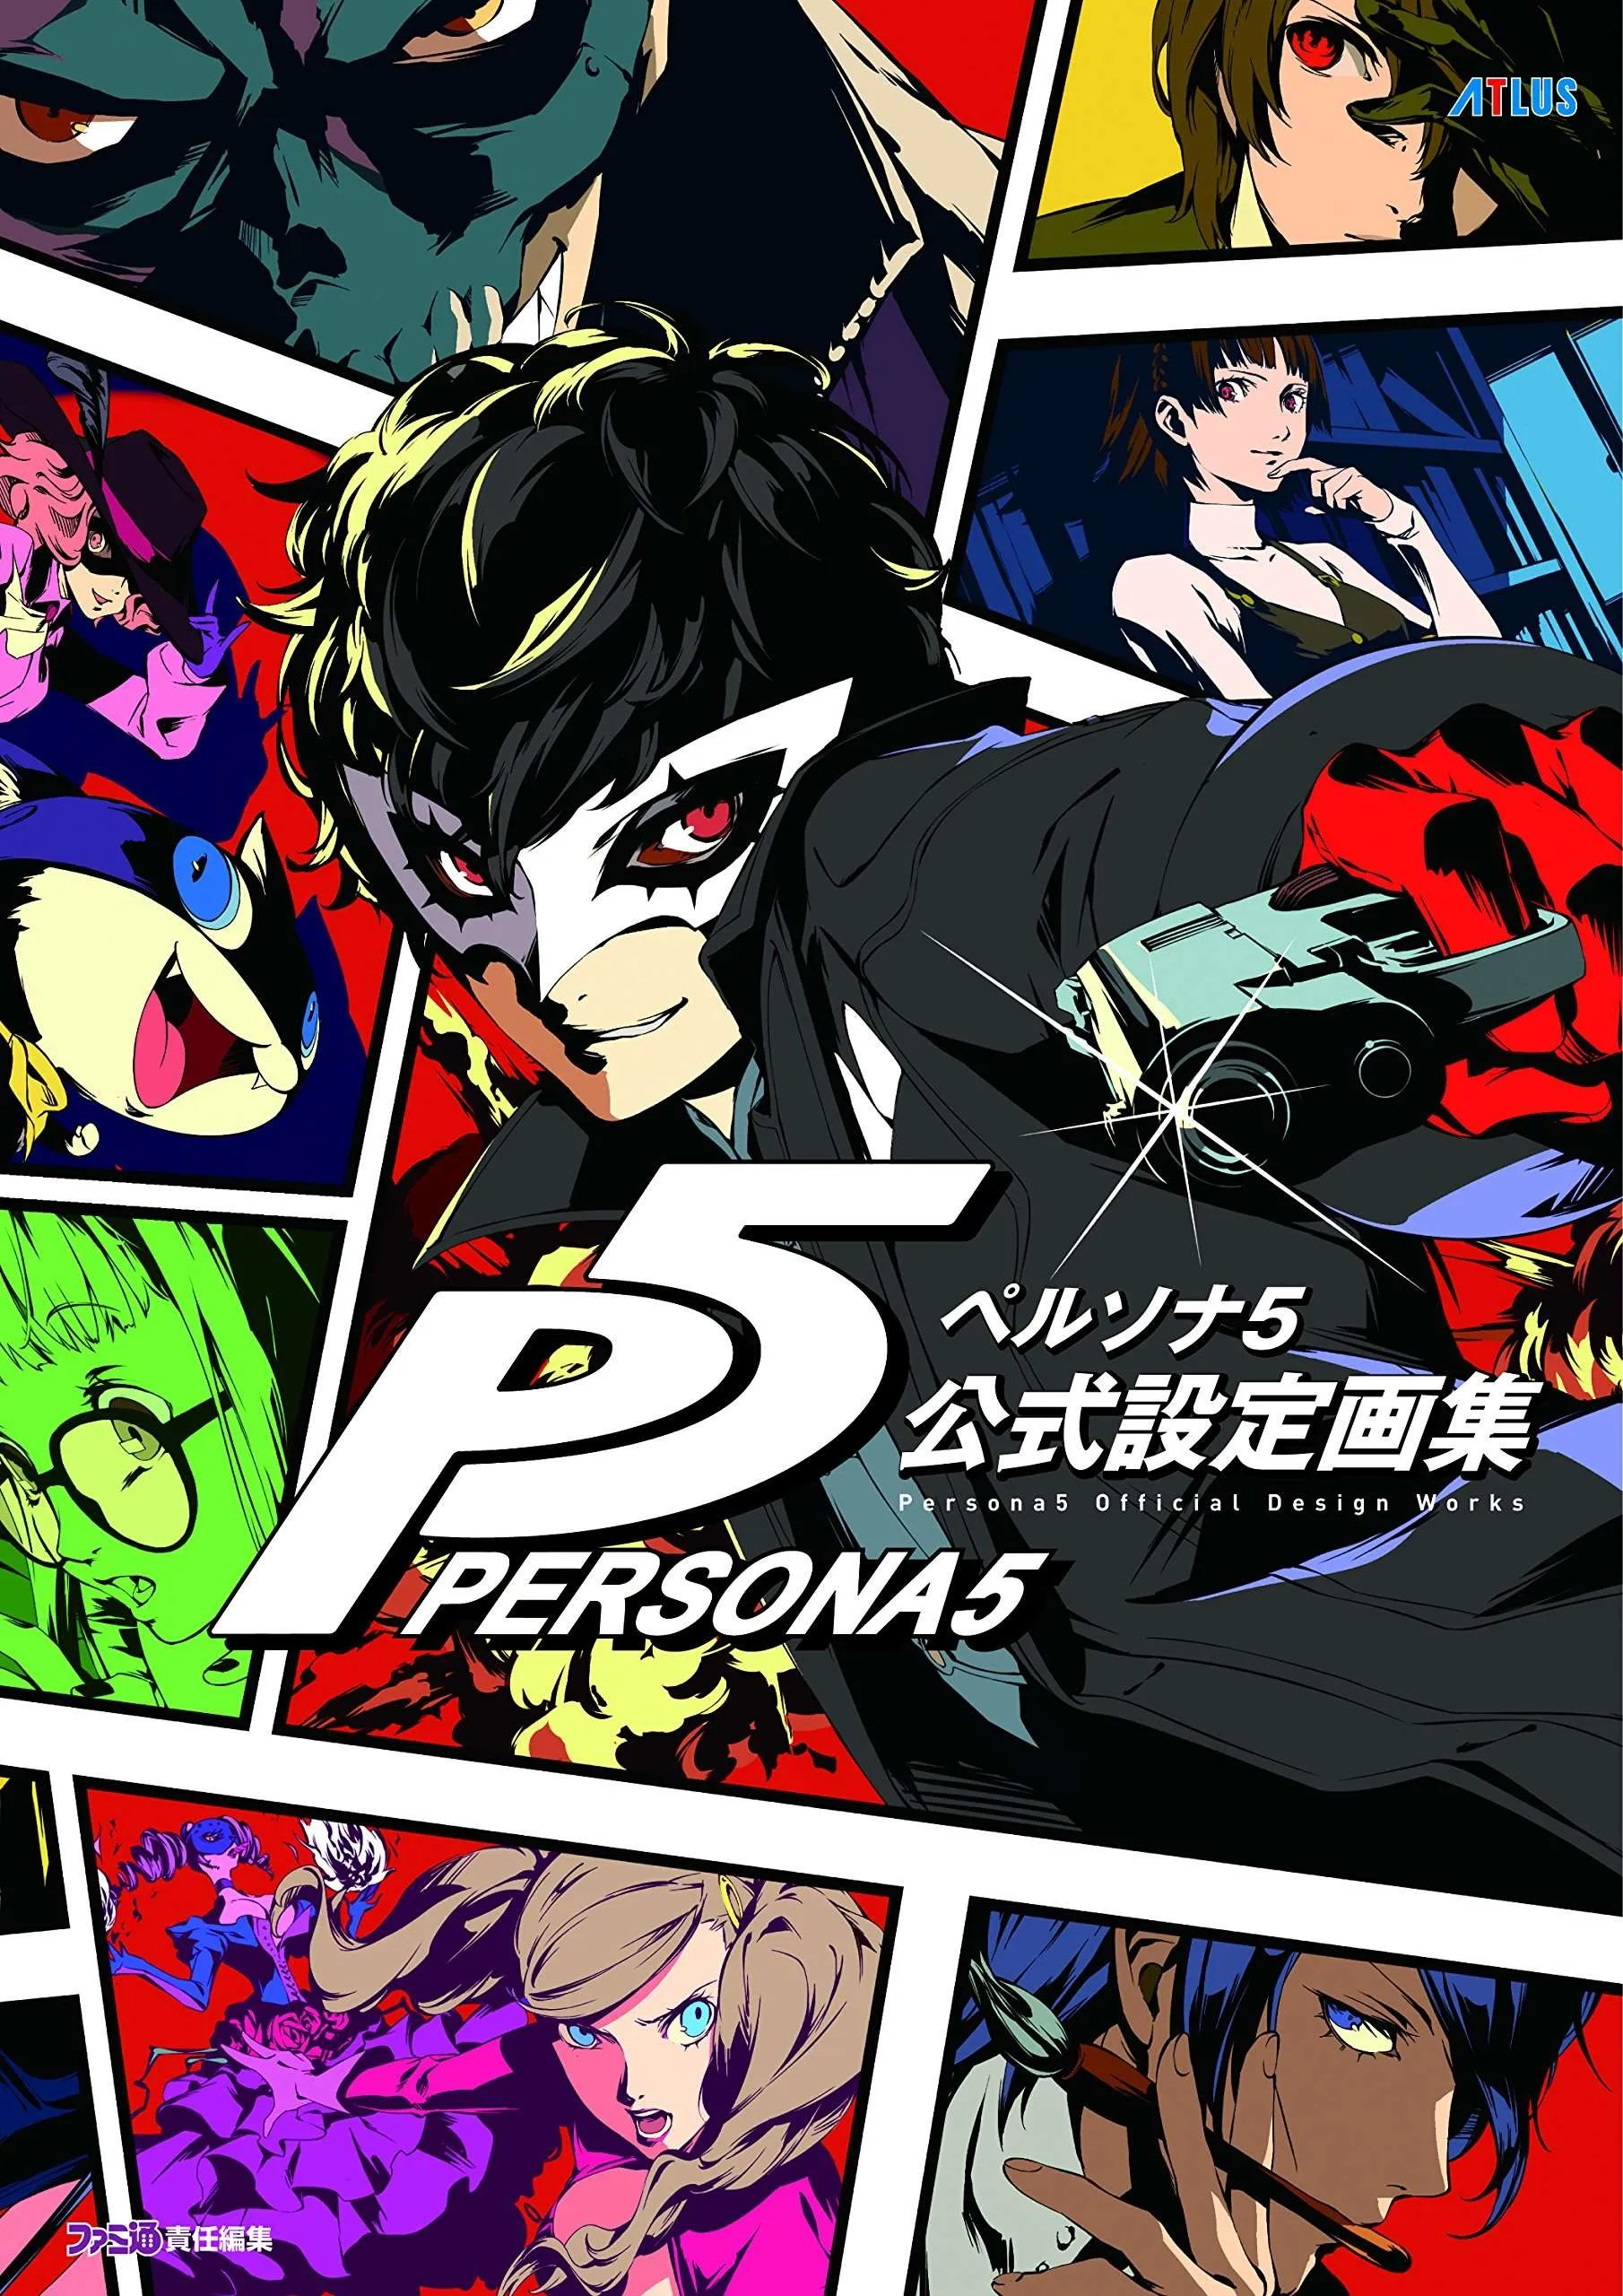 Persona 4 The Animation Wallpaper Persona 5 Official Visual Works Art Book 10 Preview Pages